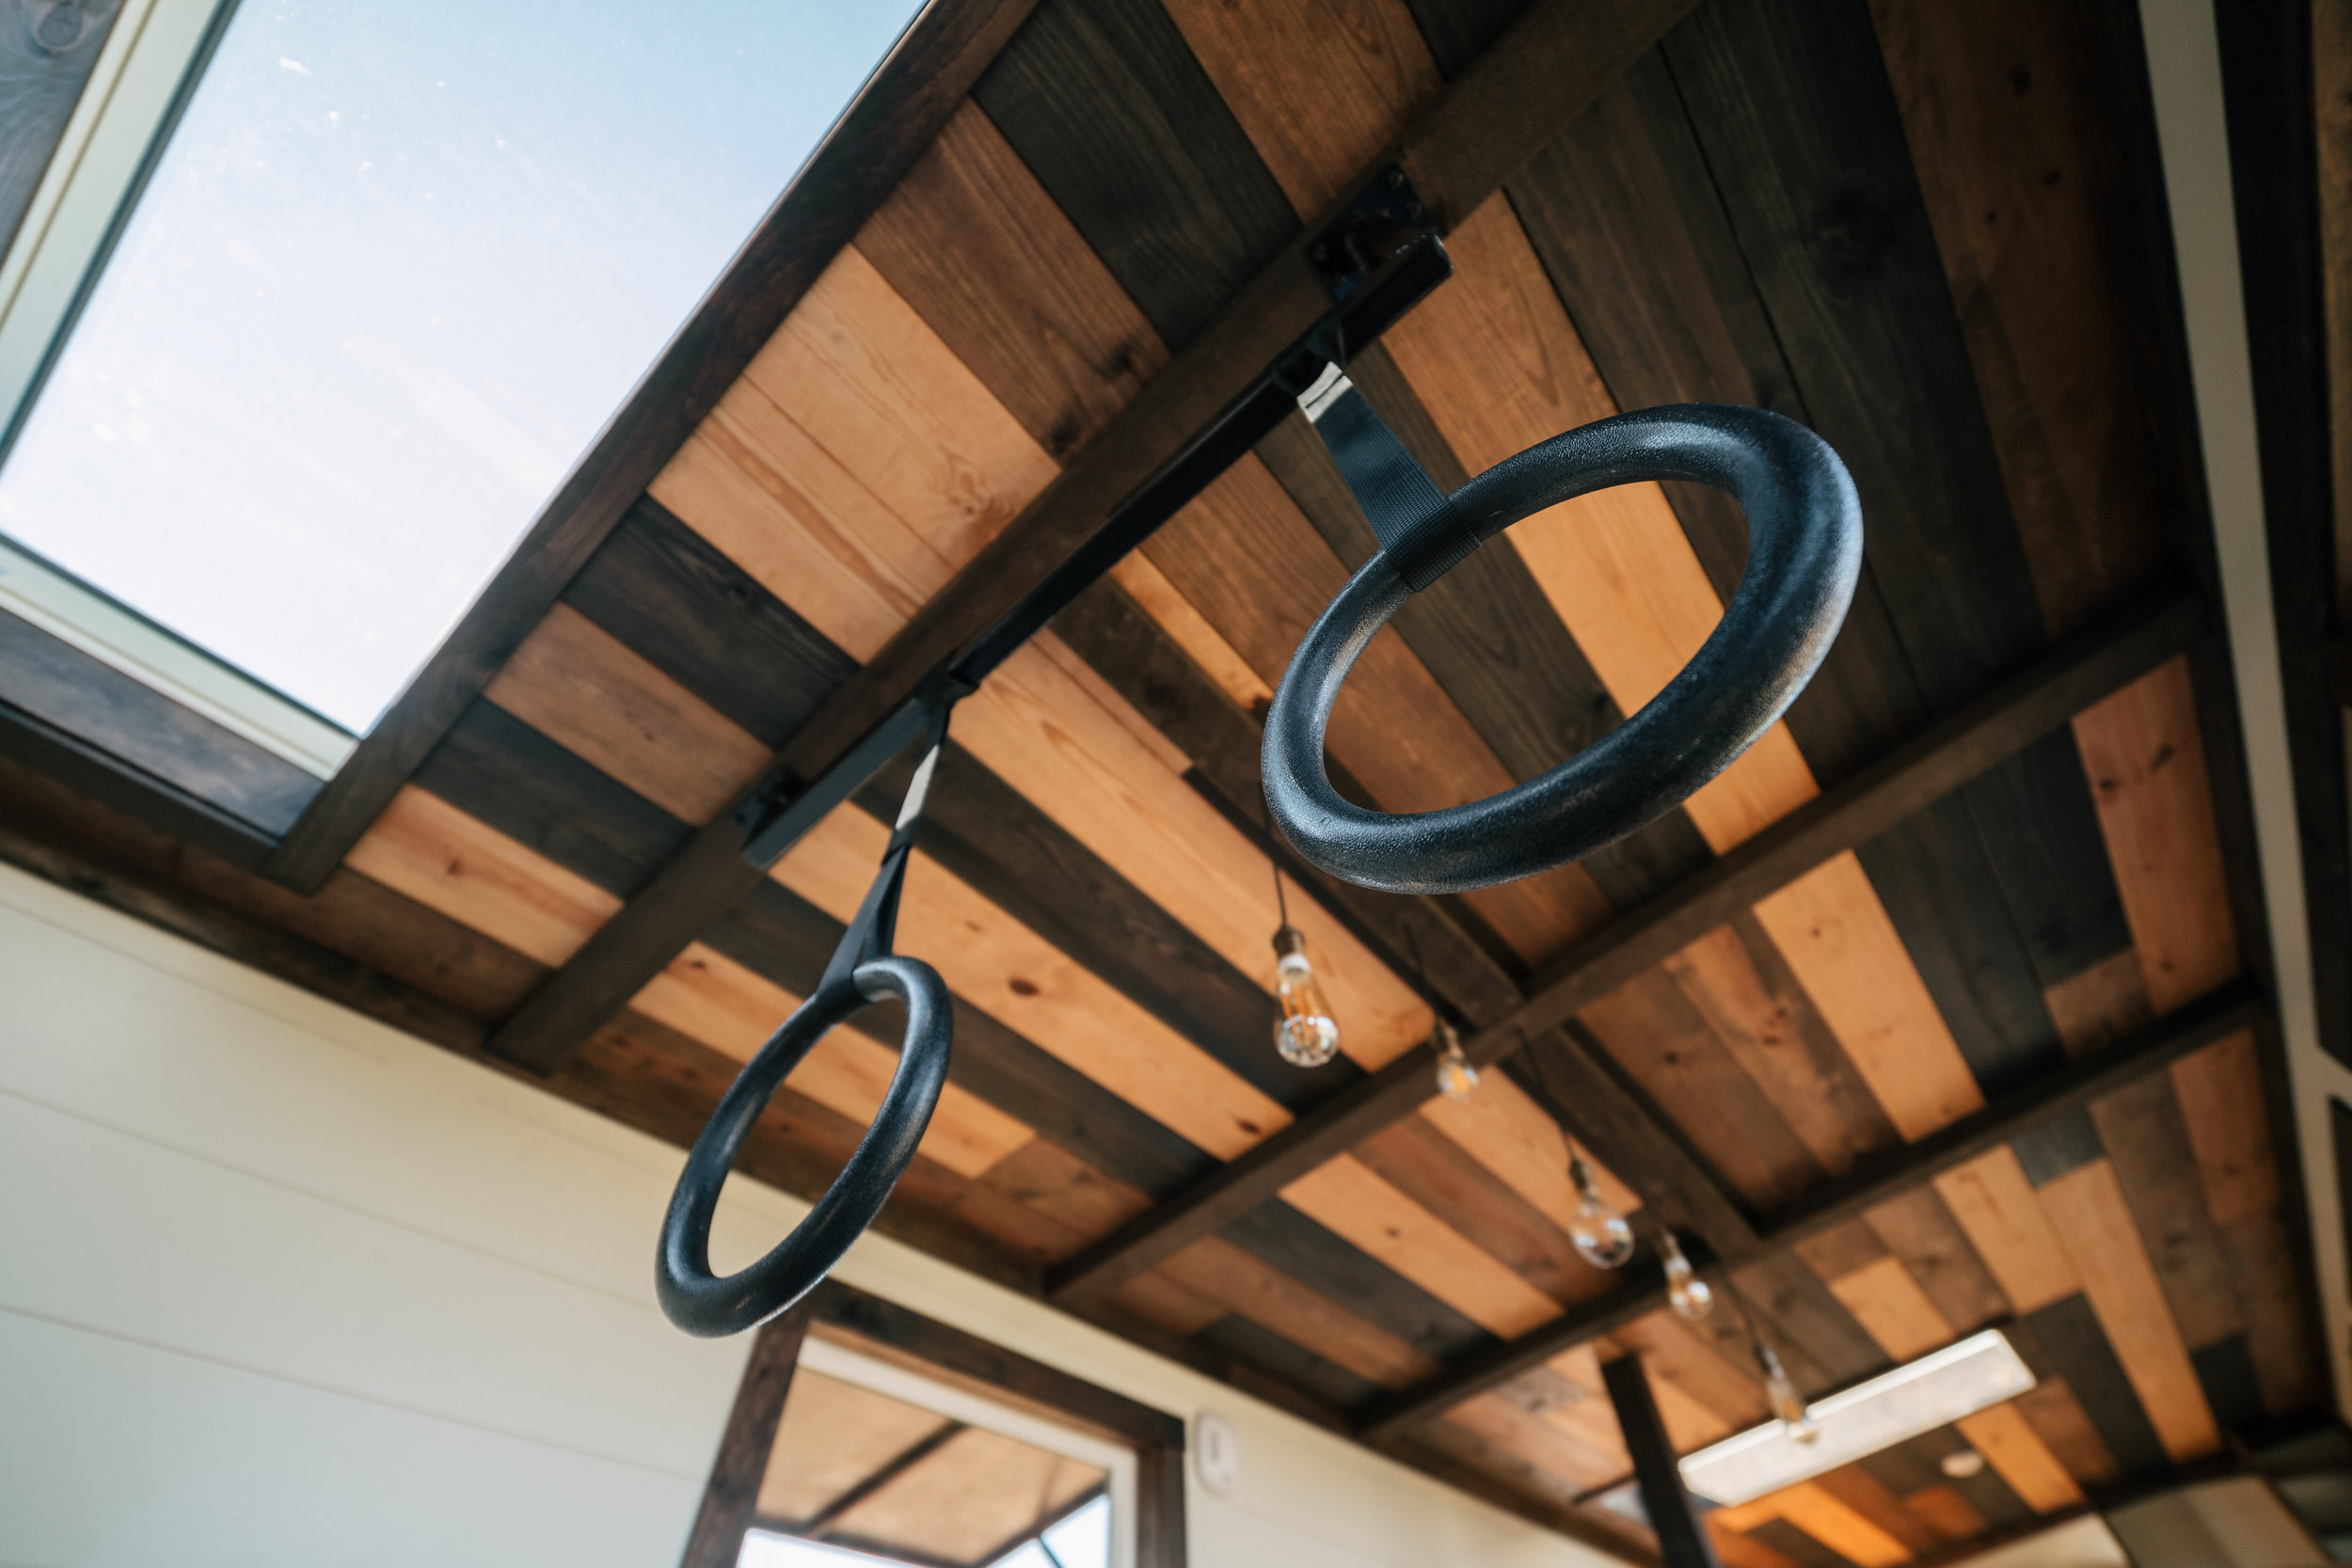 The Silhouette by Wind River Tiny Homes - multi stained tongue & groove ceiling, gym rings, skylight